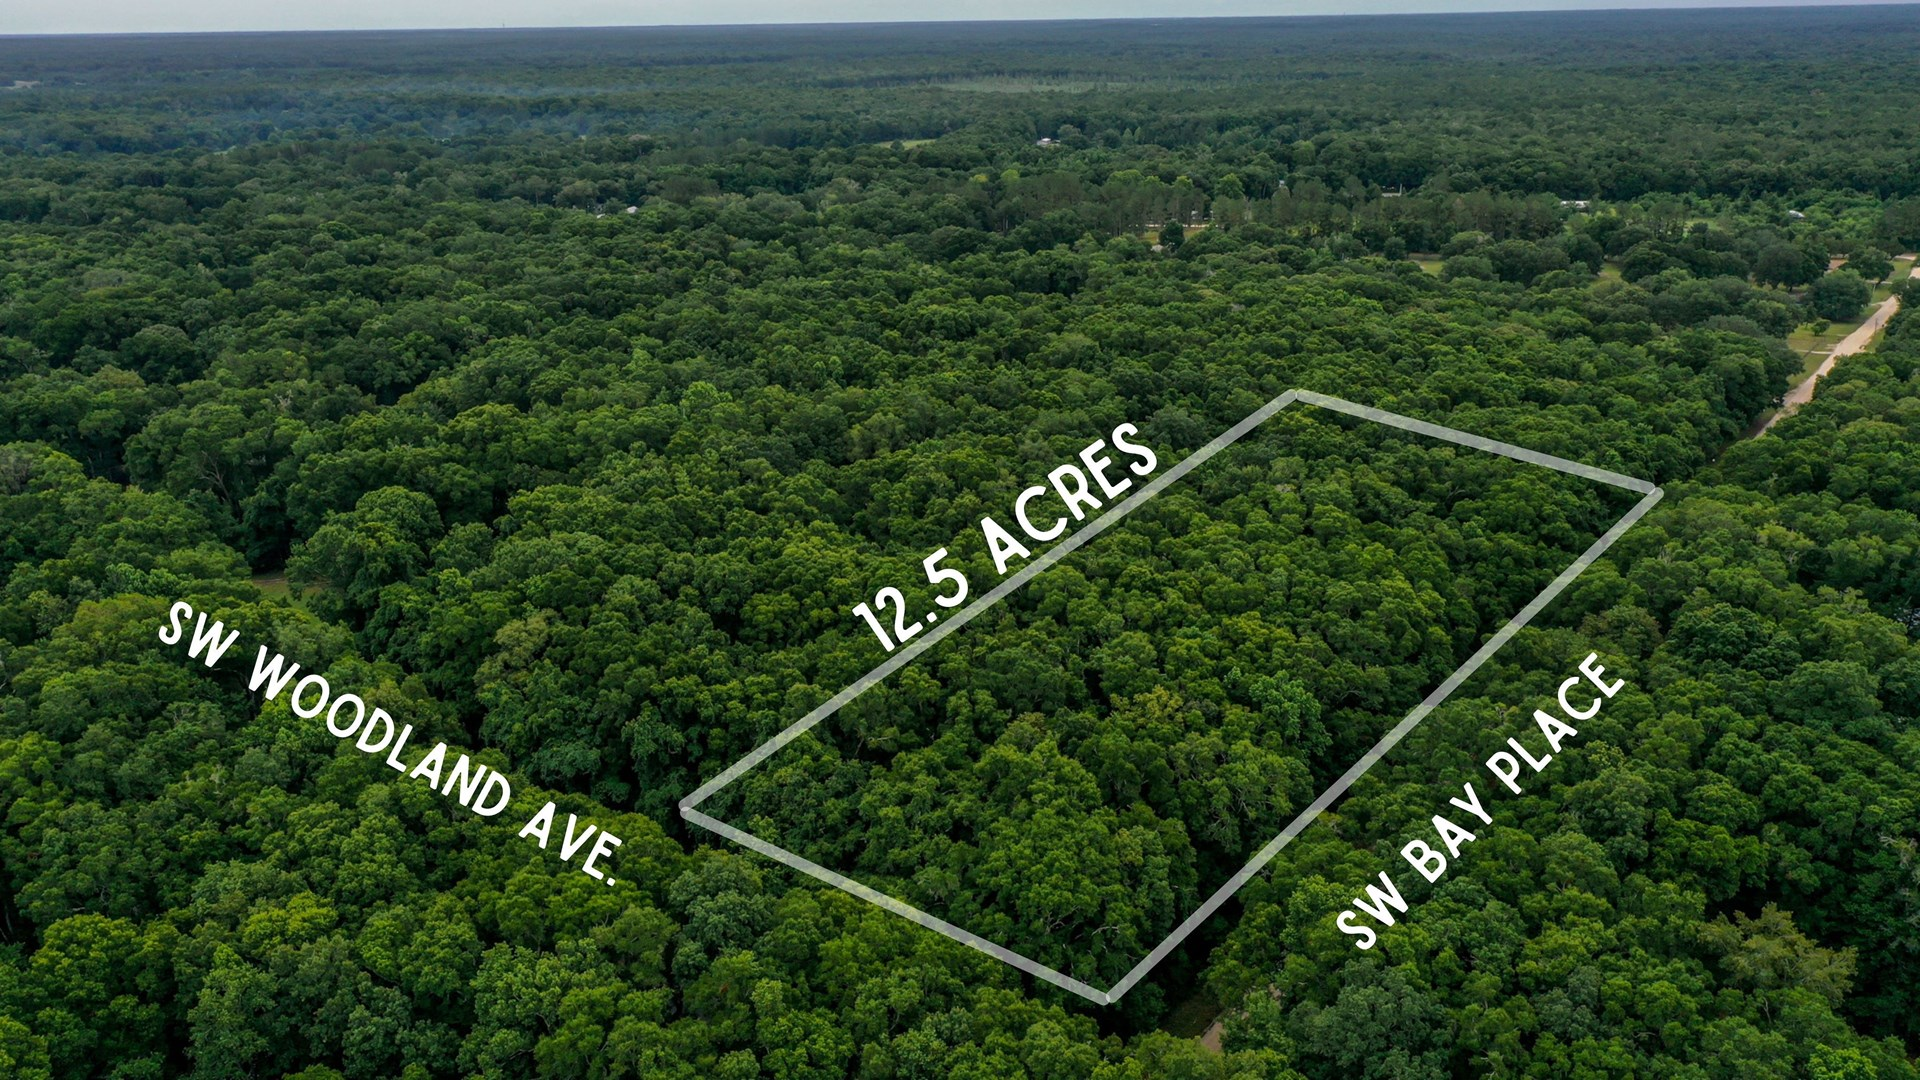 BEAUTIFUL NORTH FLORIDA LAND FOR SALE!